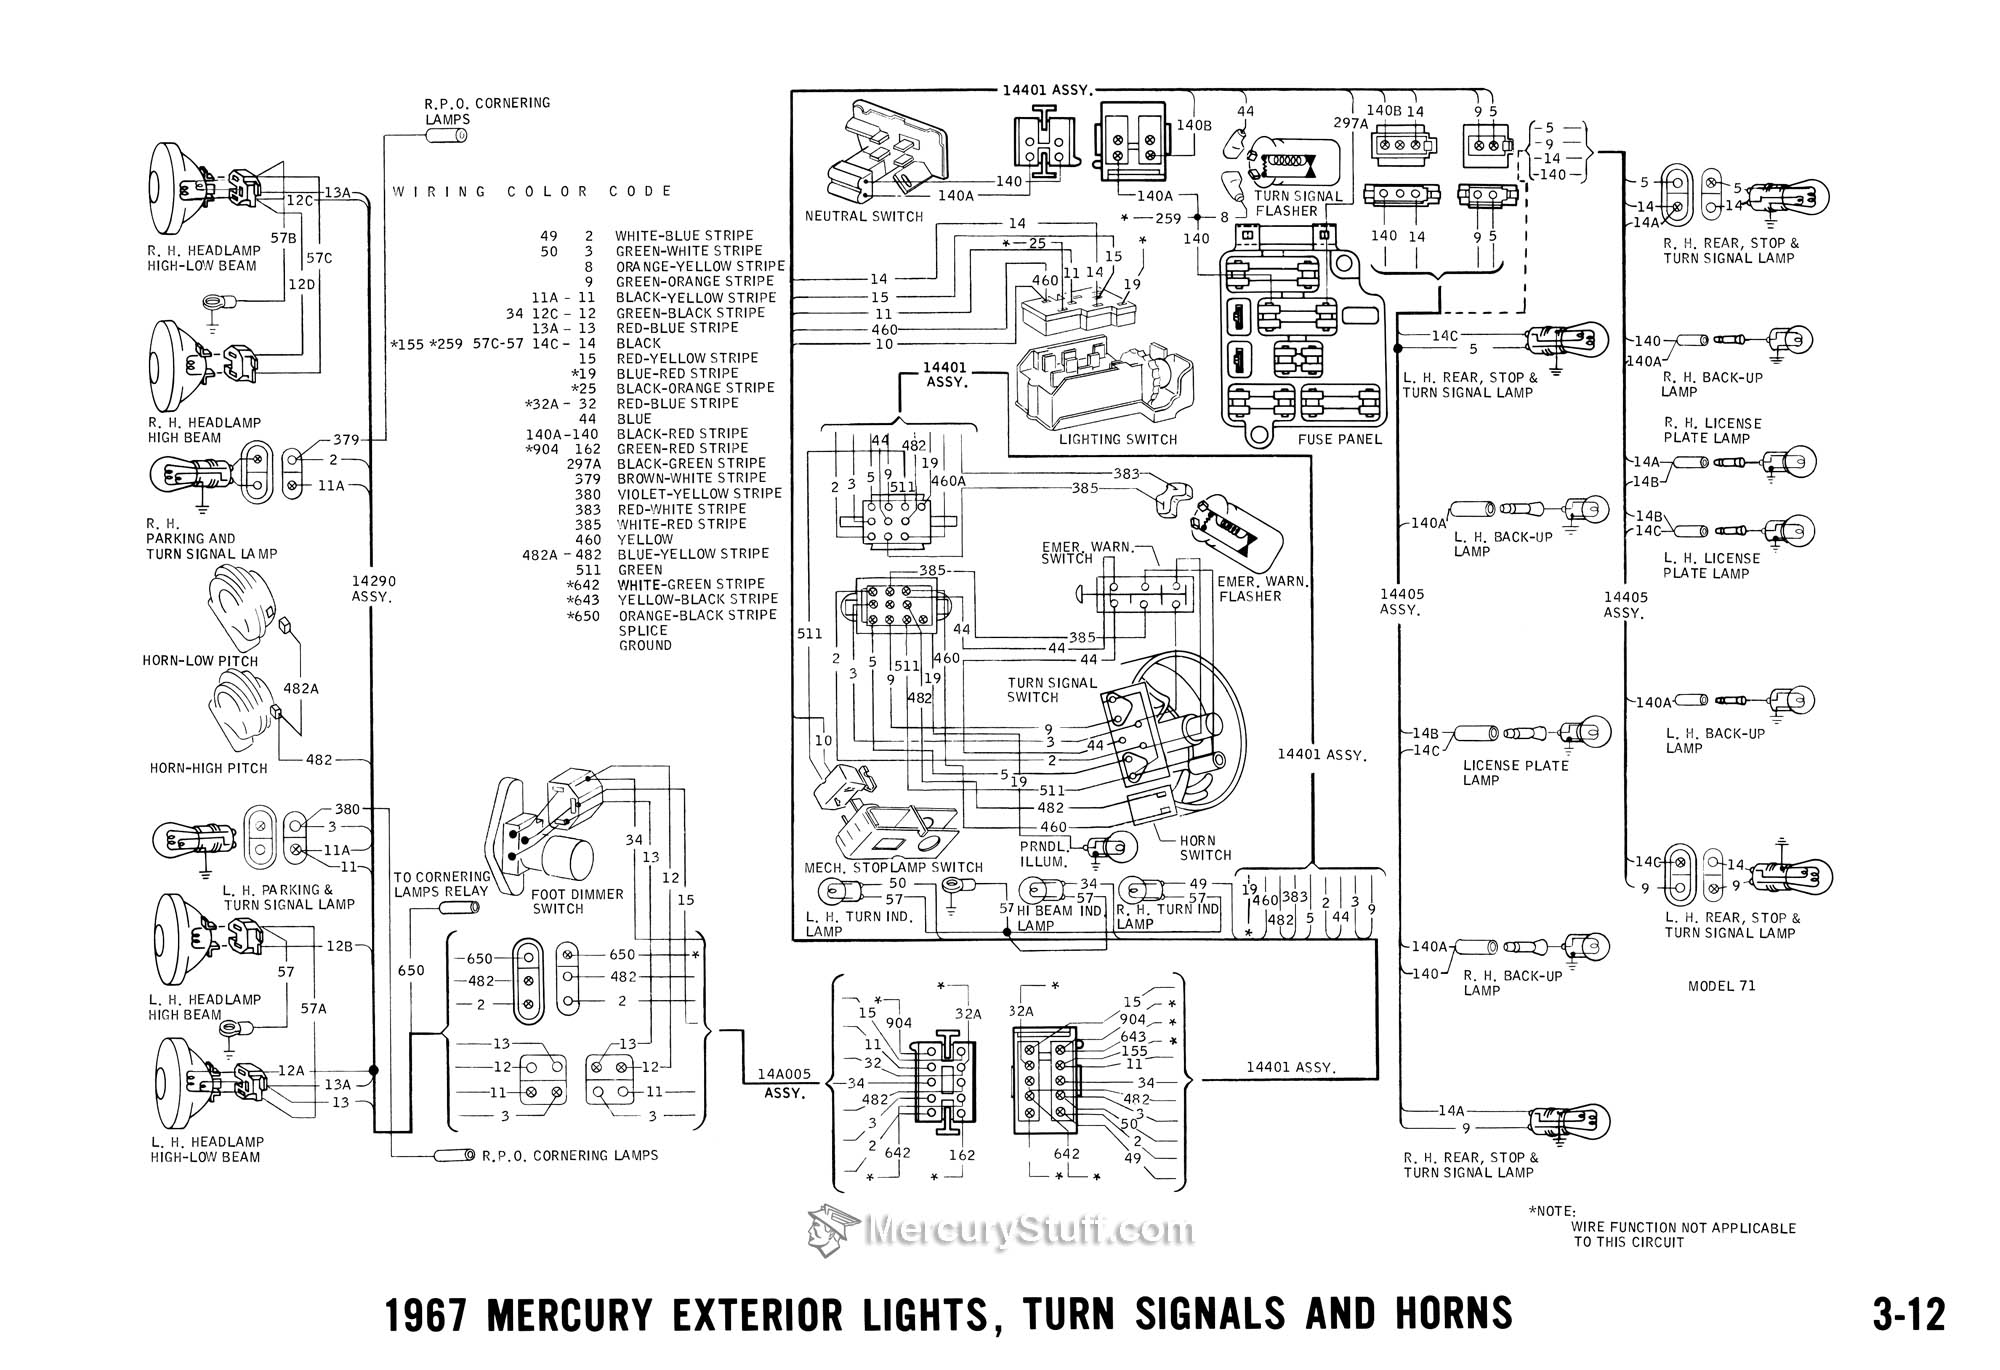 1967 mercury exterior lights turn signals horns cougar wiring diagram ford wiring diagrams instruction 67 cougar wiring harness at panicattacktreatment.co